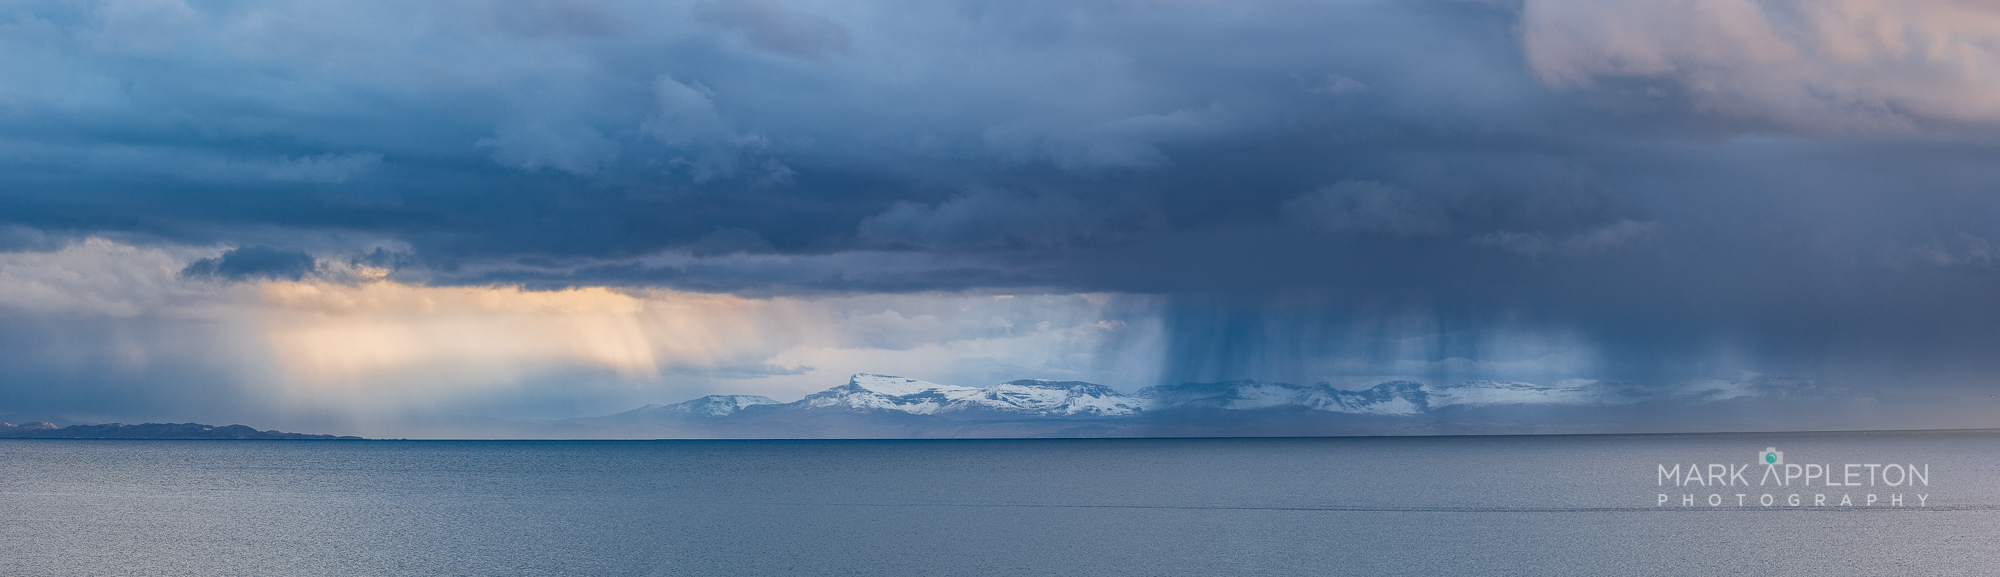 Sleet shower over Skye